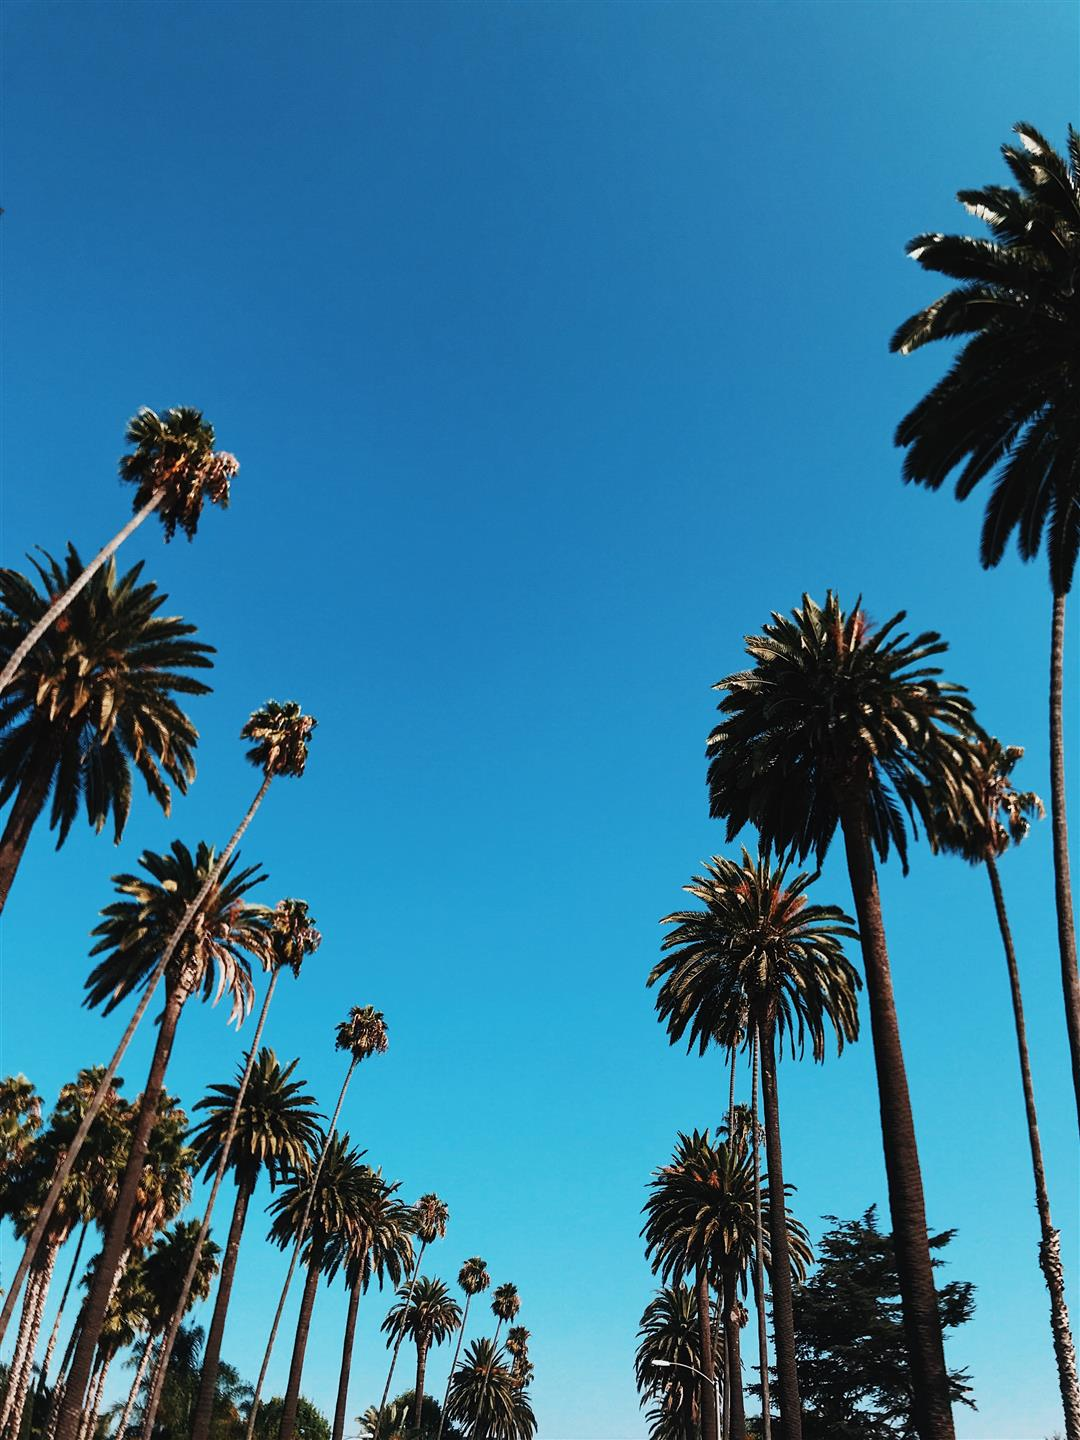 shot of the palm trees in the blue sky